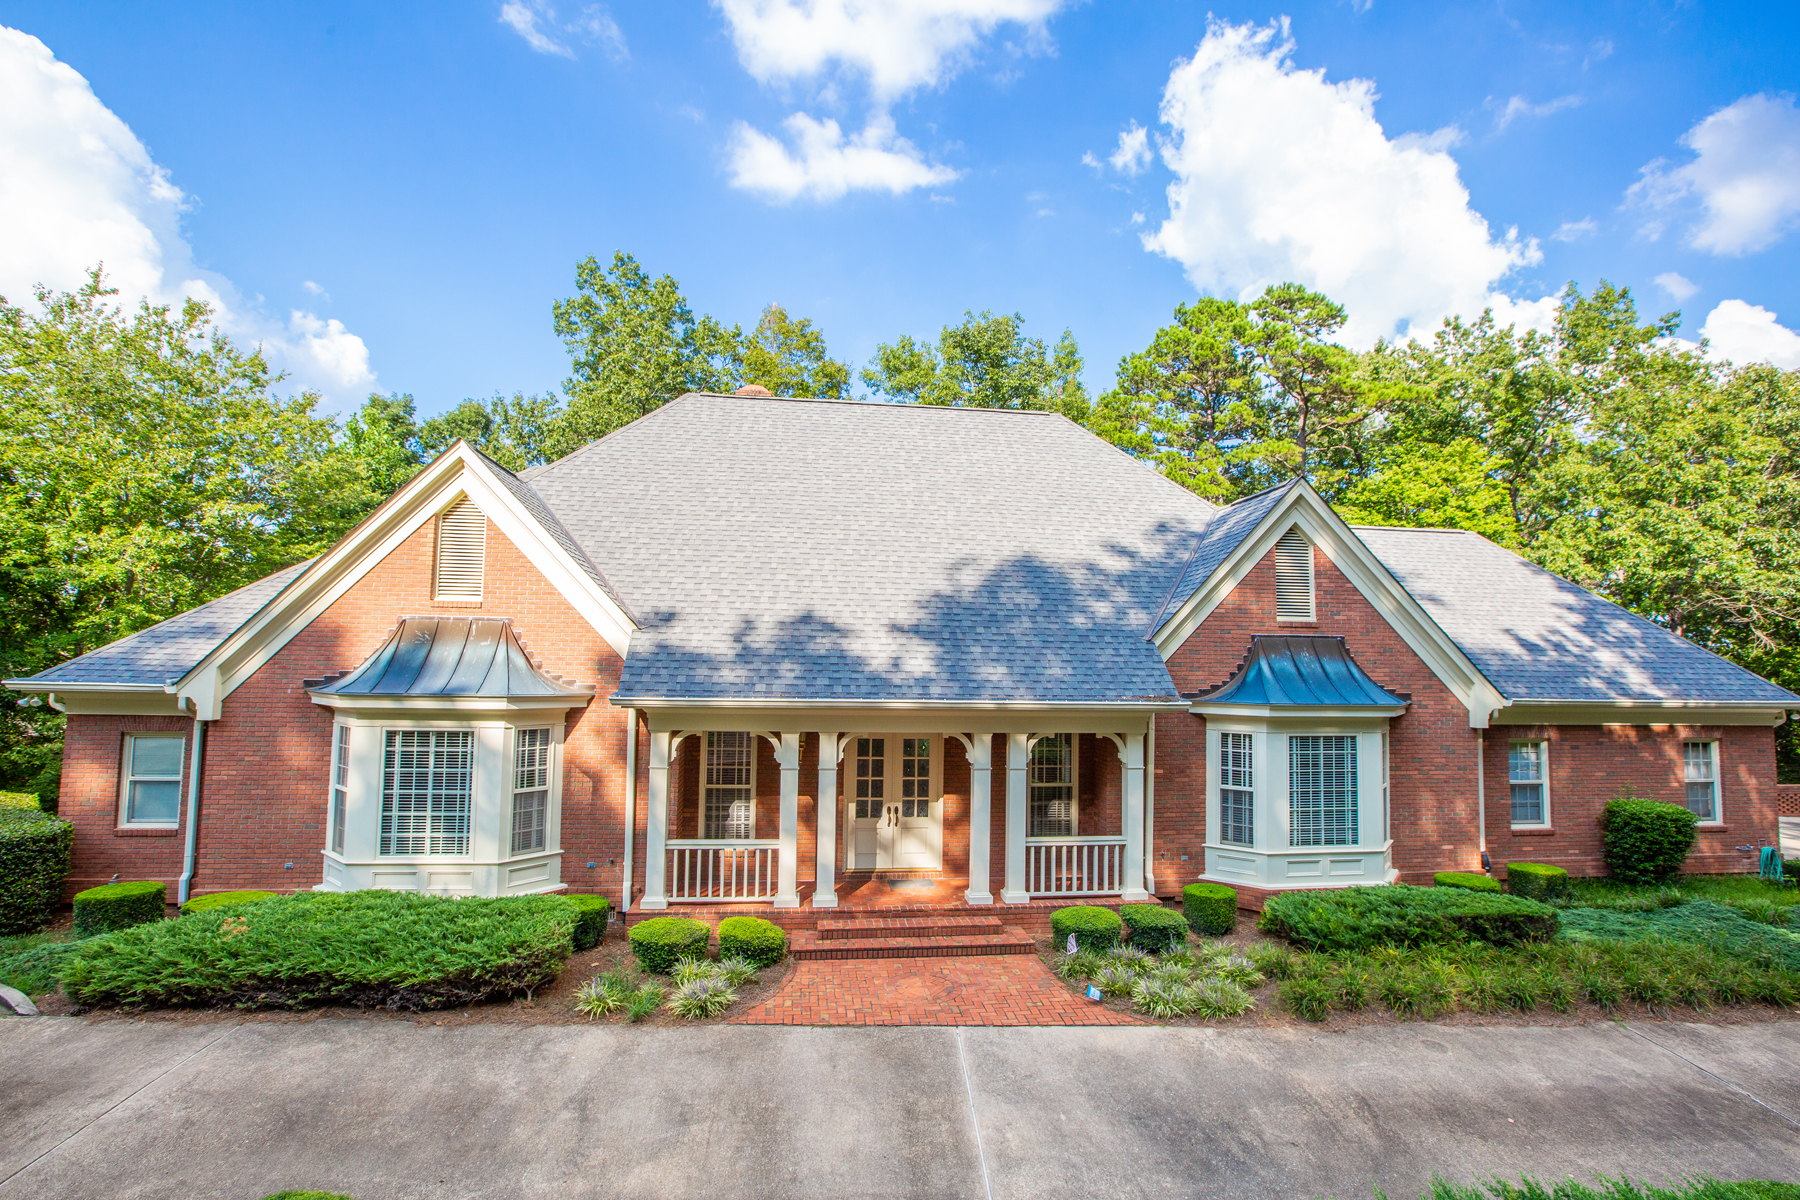 Single Family Homes for Active at Lanier's Best Estate Home 2239 Sidney Drive Gainesville, Georgia 30506 United States